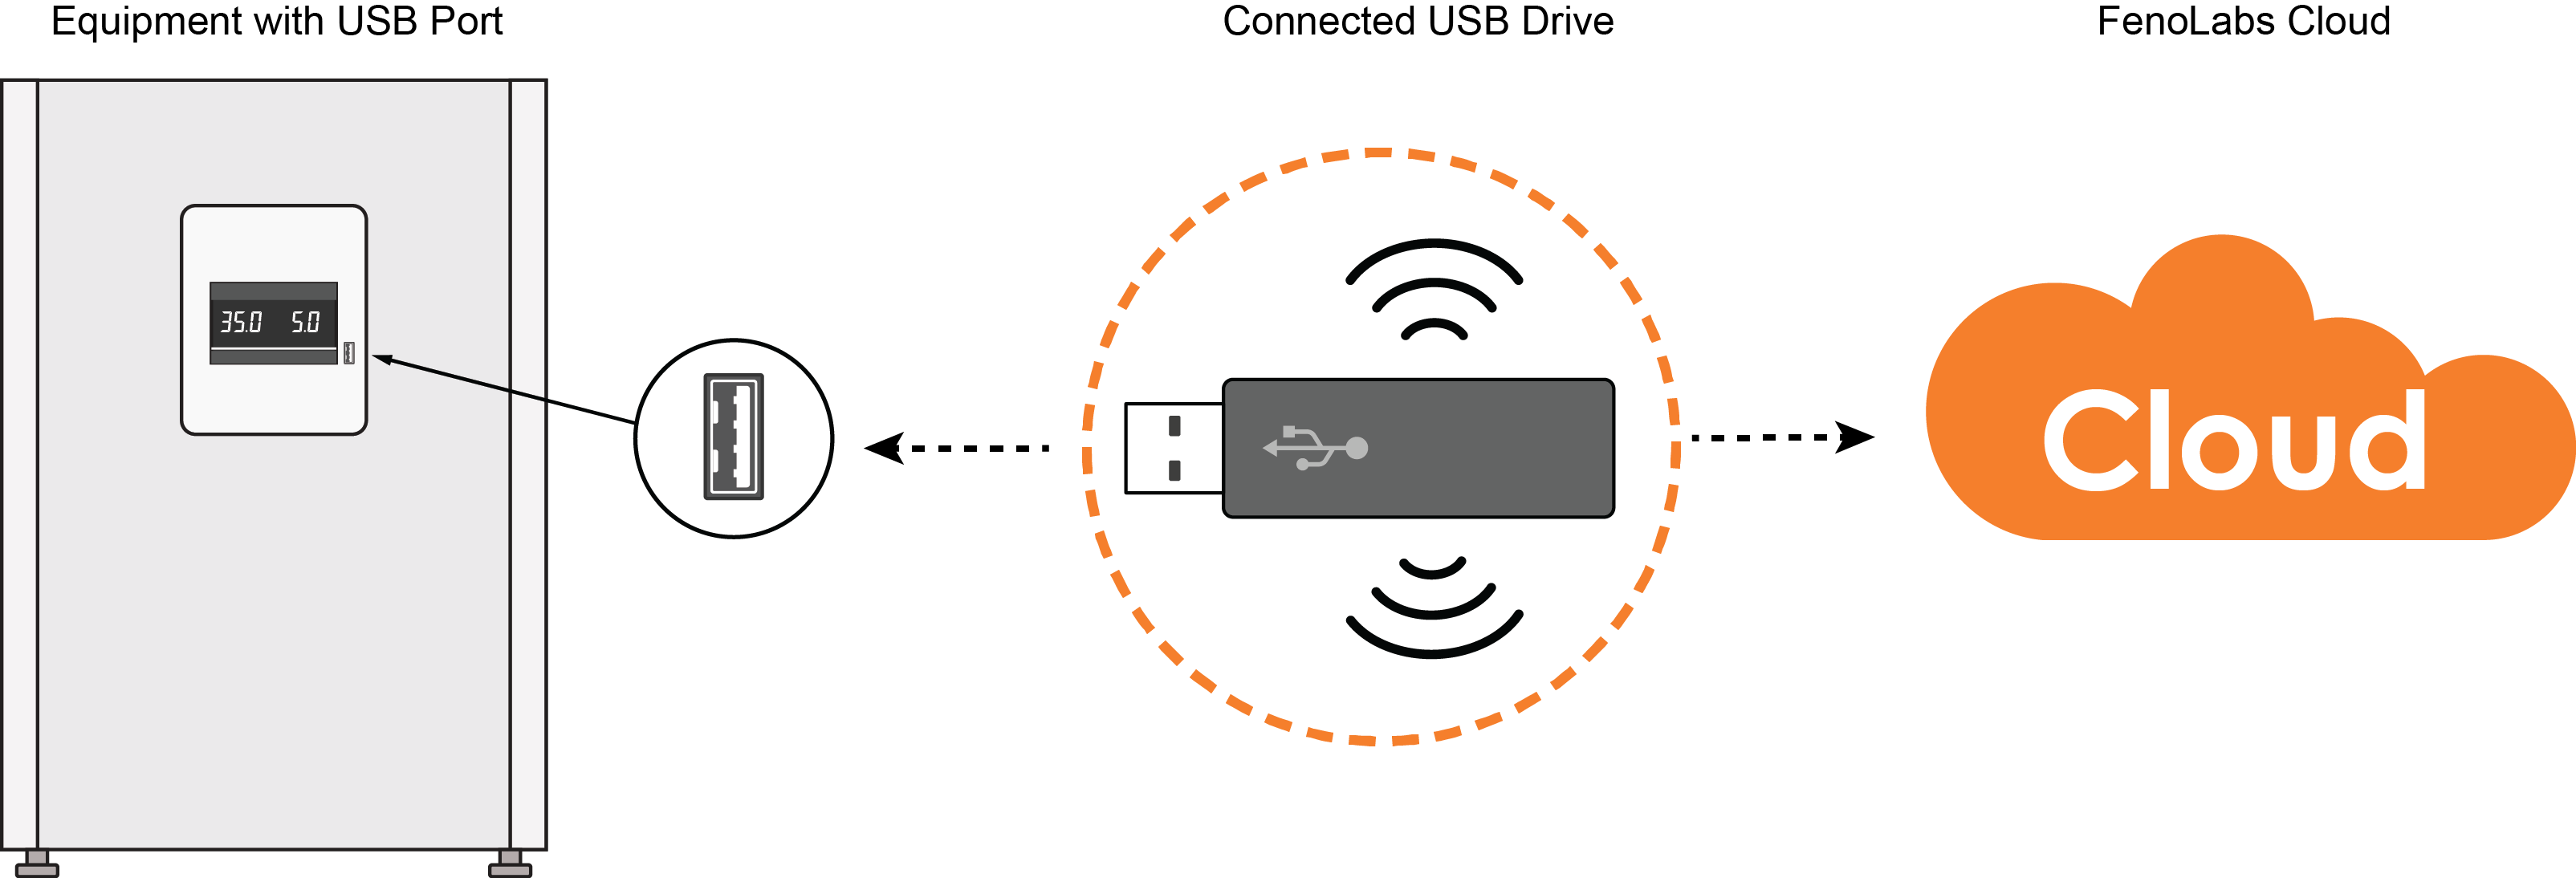 connected-usb-drive-for-co2-incubator